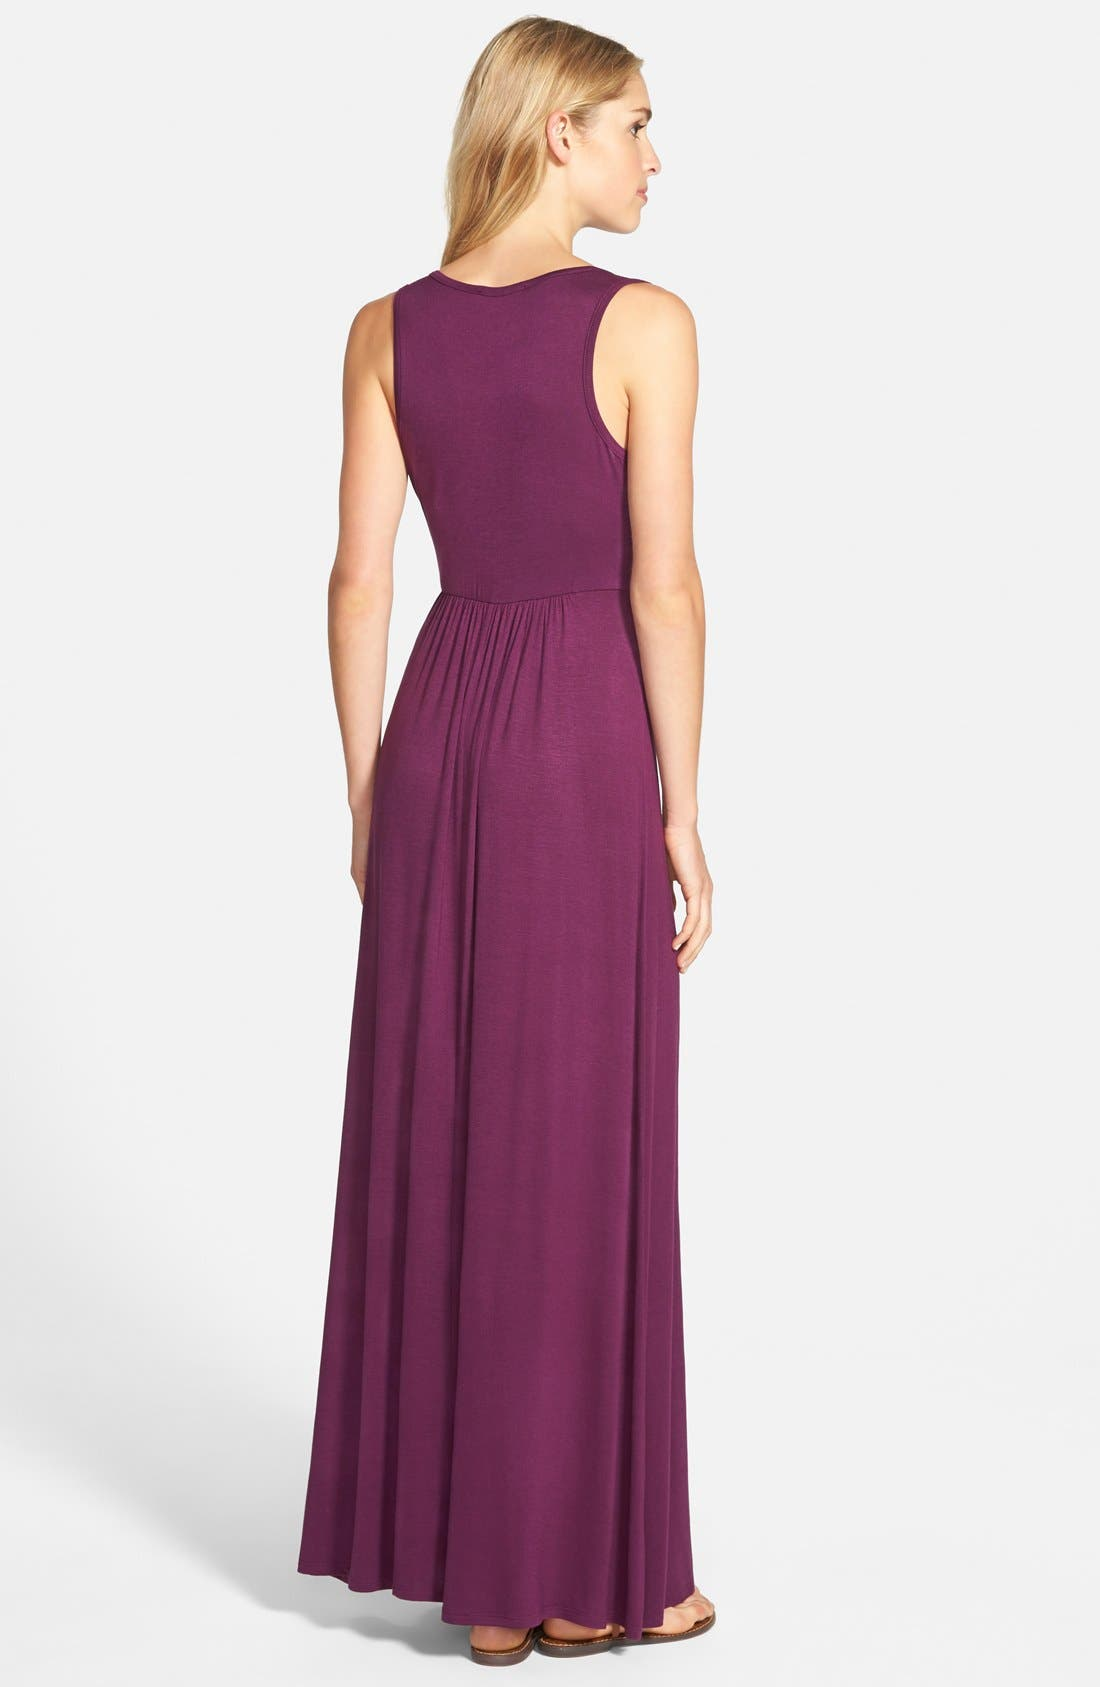 V-Neck Jersey Maxi Dress,                             Alternate thumbnail 9, color,                             PURPLE DARK